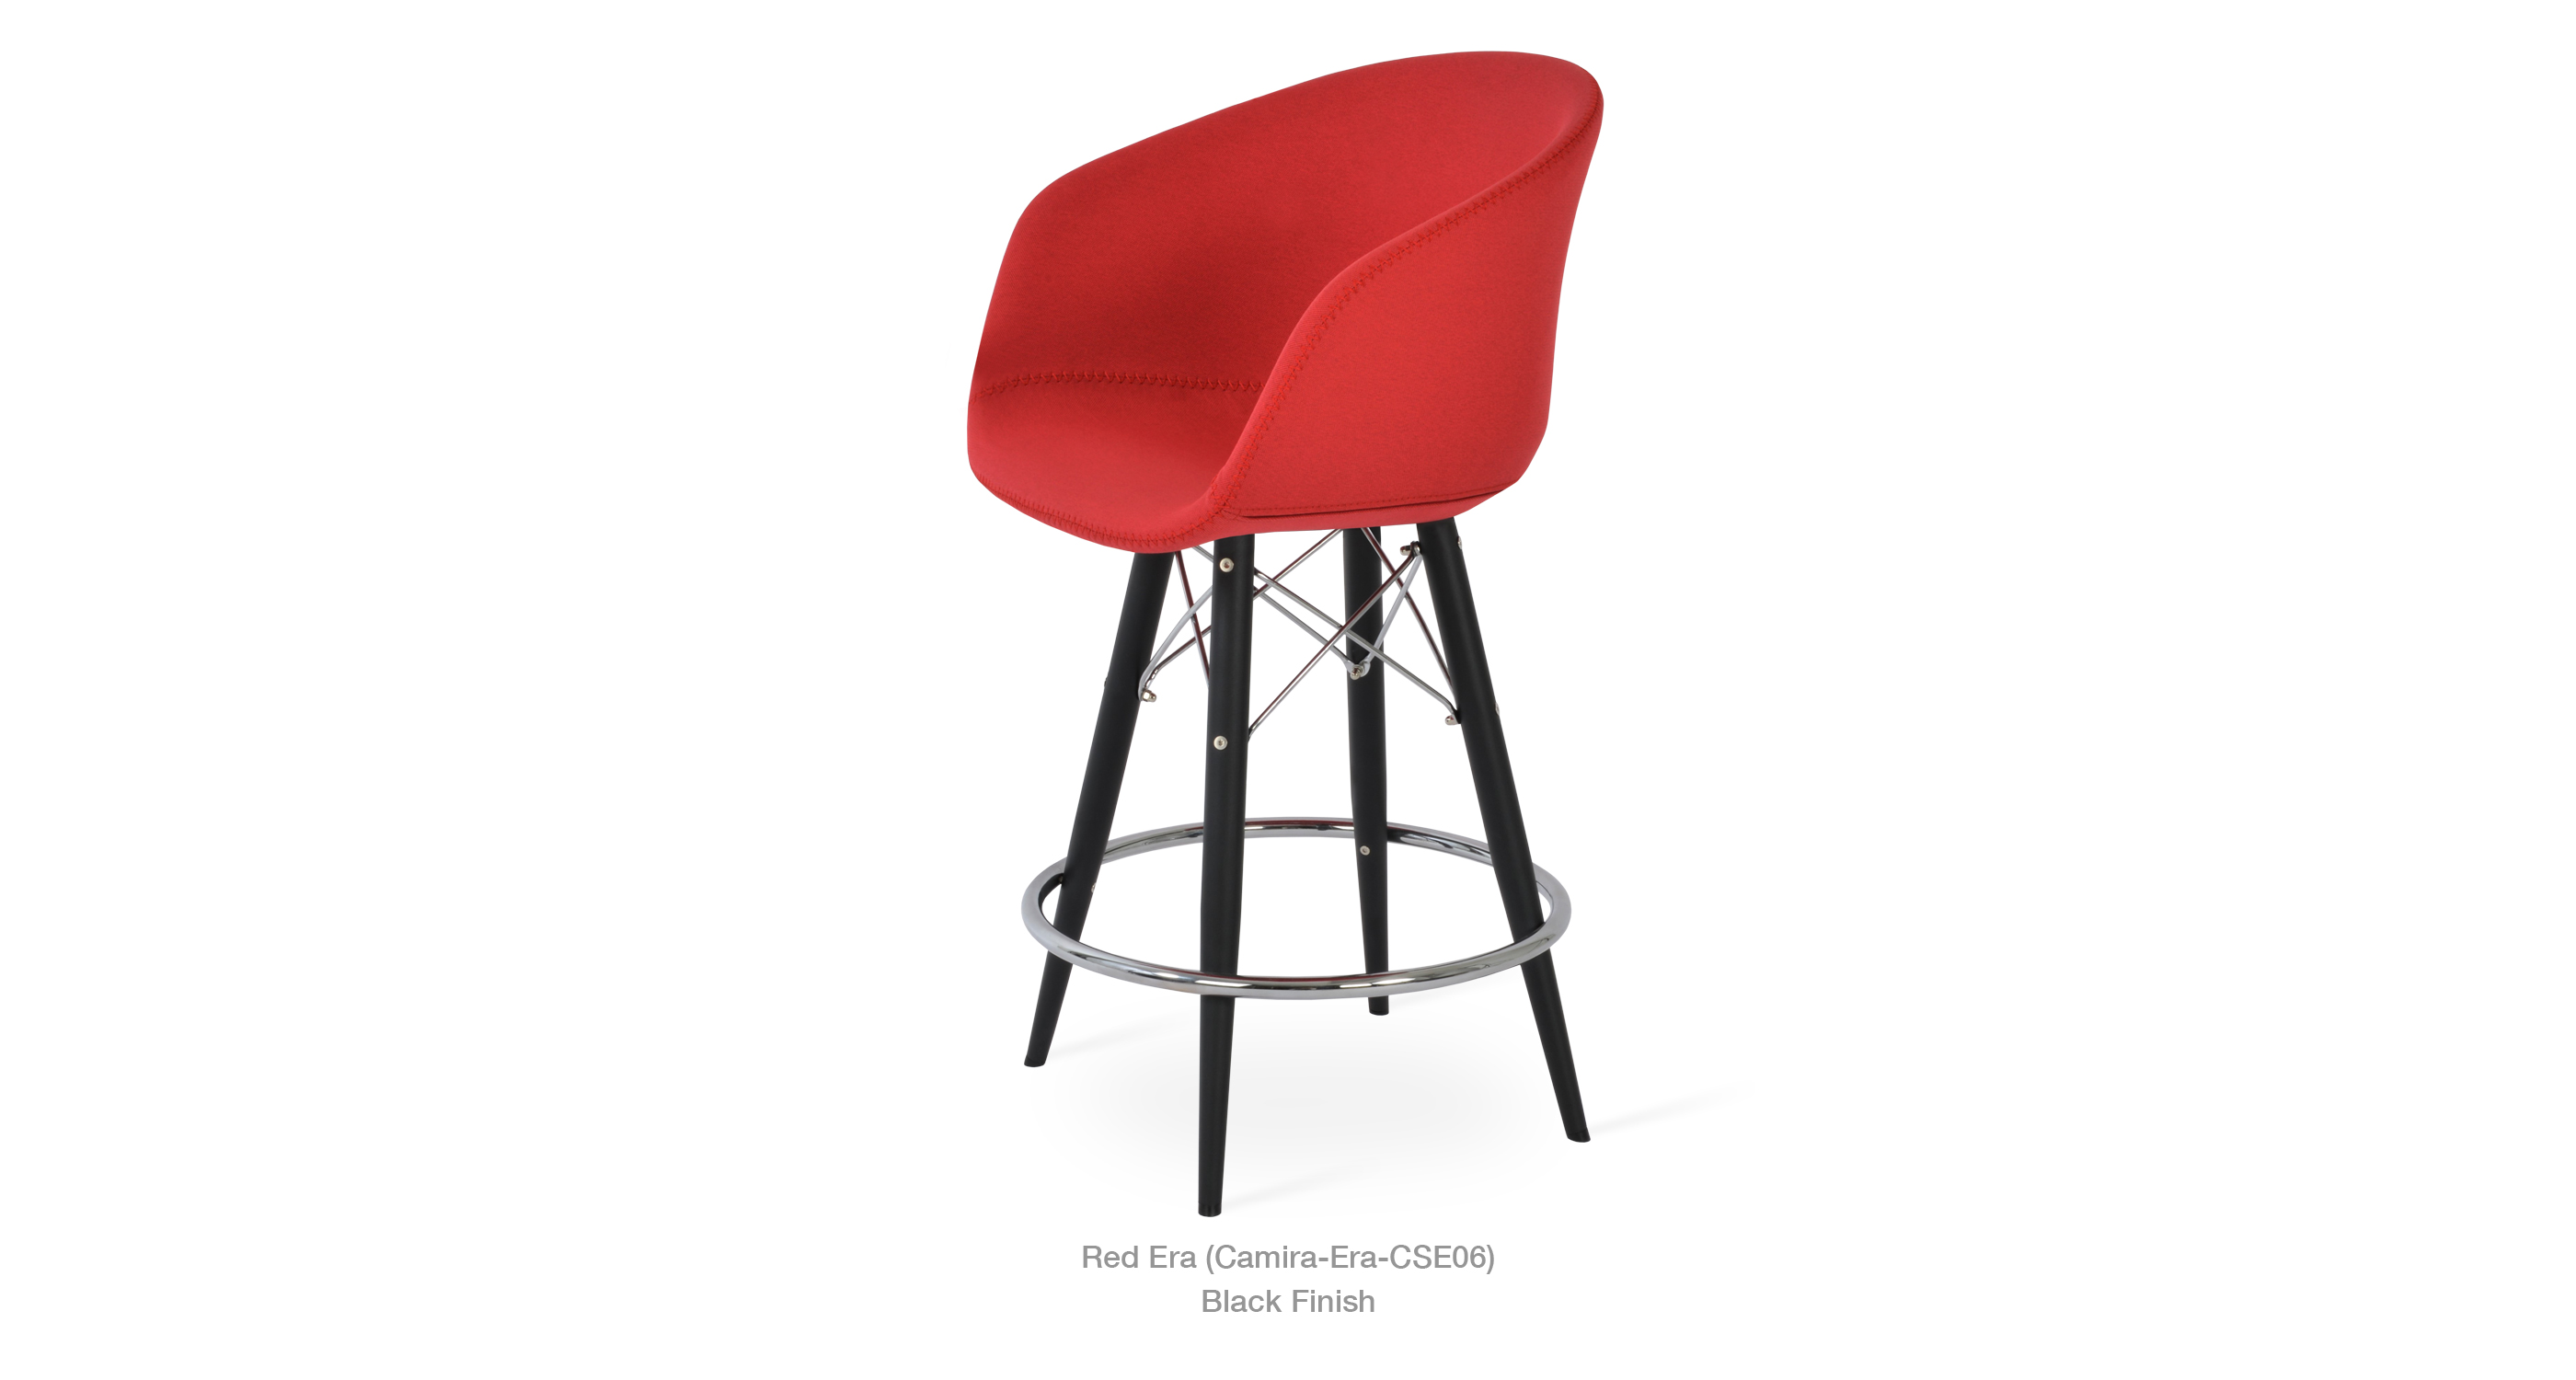 Tribeca Mw Stool Red Era